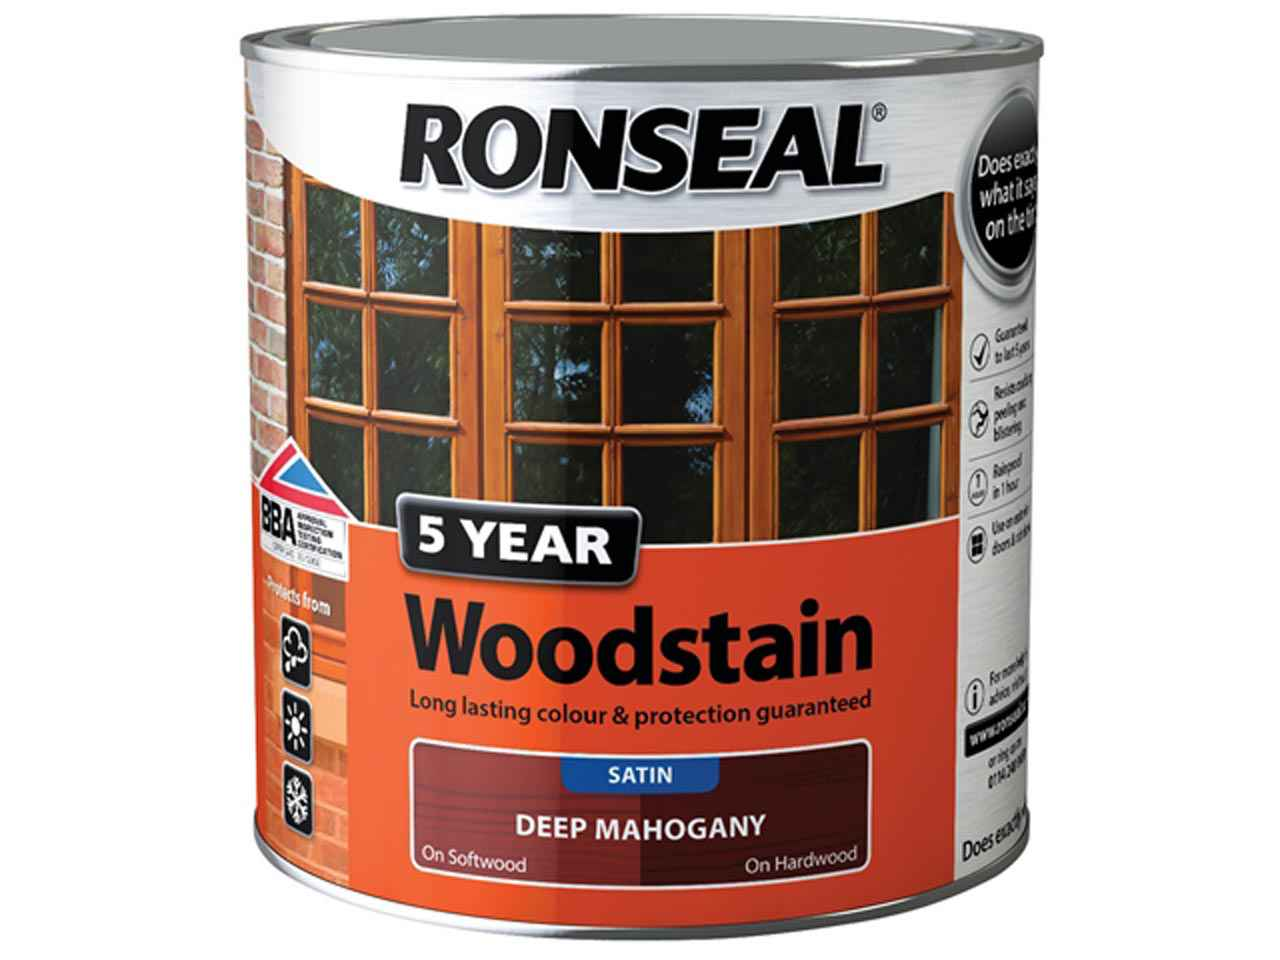 Ronseal Rsl5ywap750 5 Year Woodstain Antique Pine 750ml